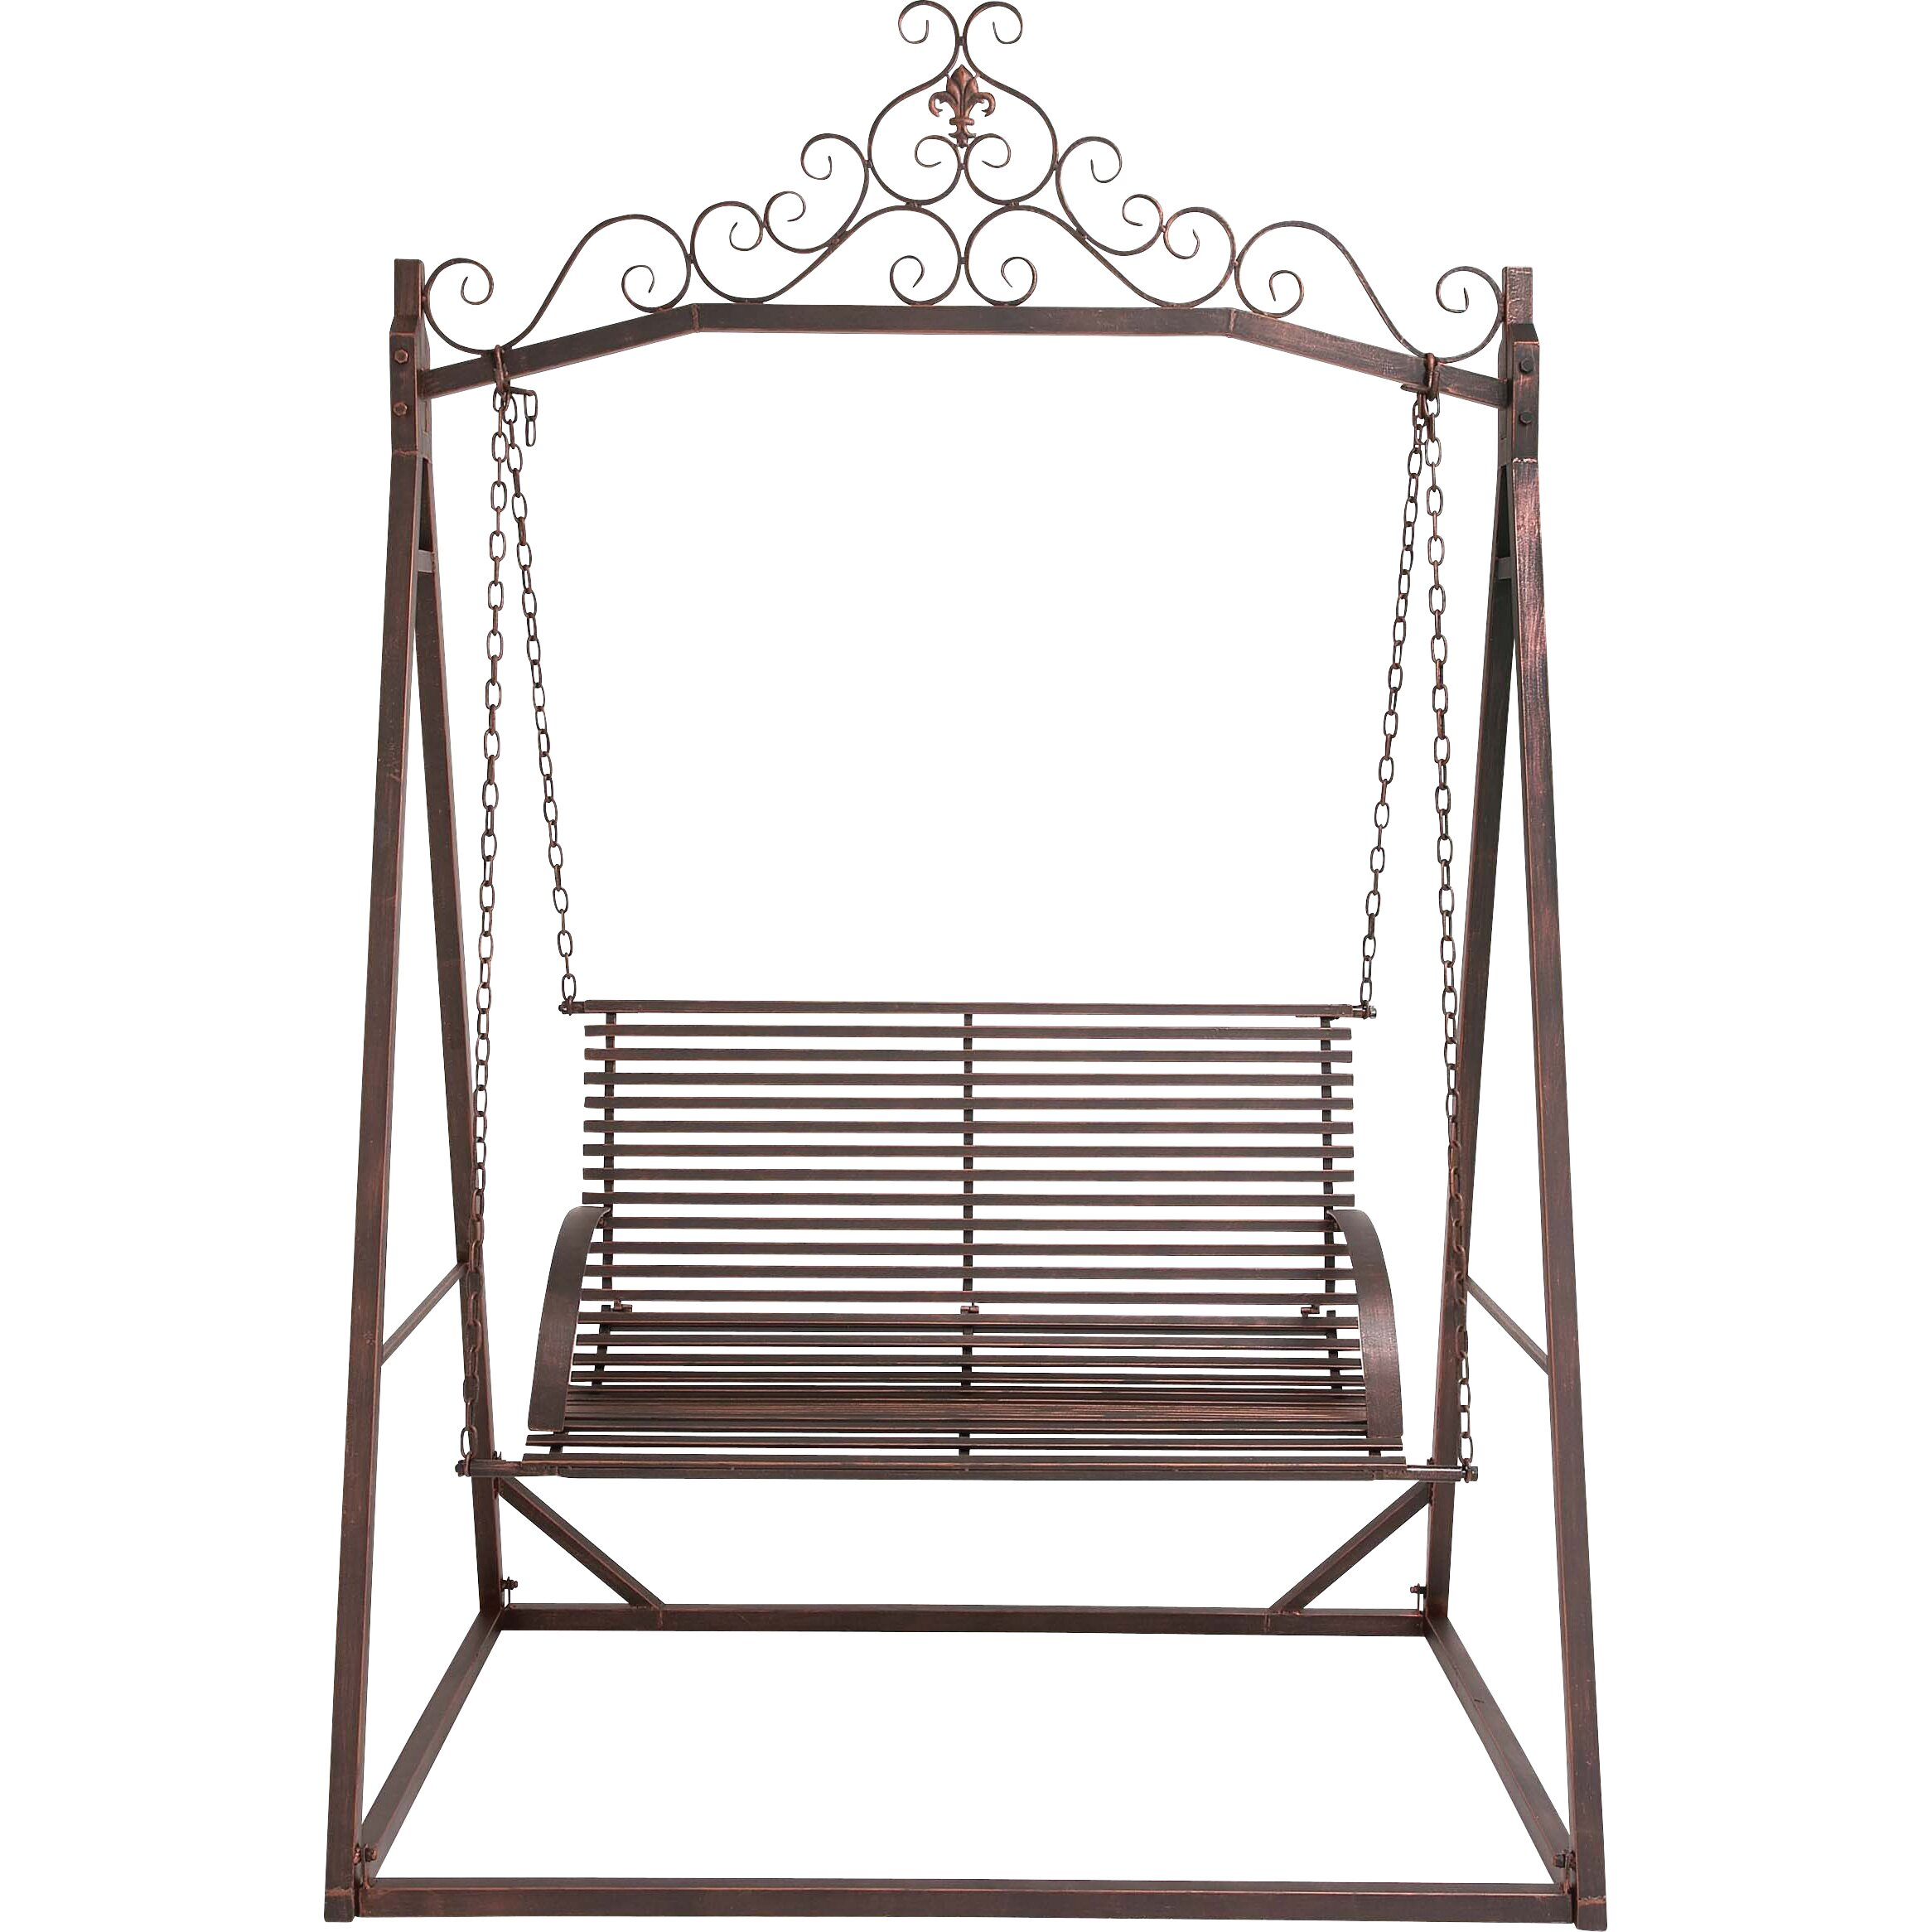 Woodland Imports The Cool Metal Garden Porch Swing | Wayfair